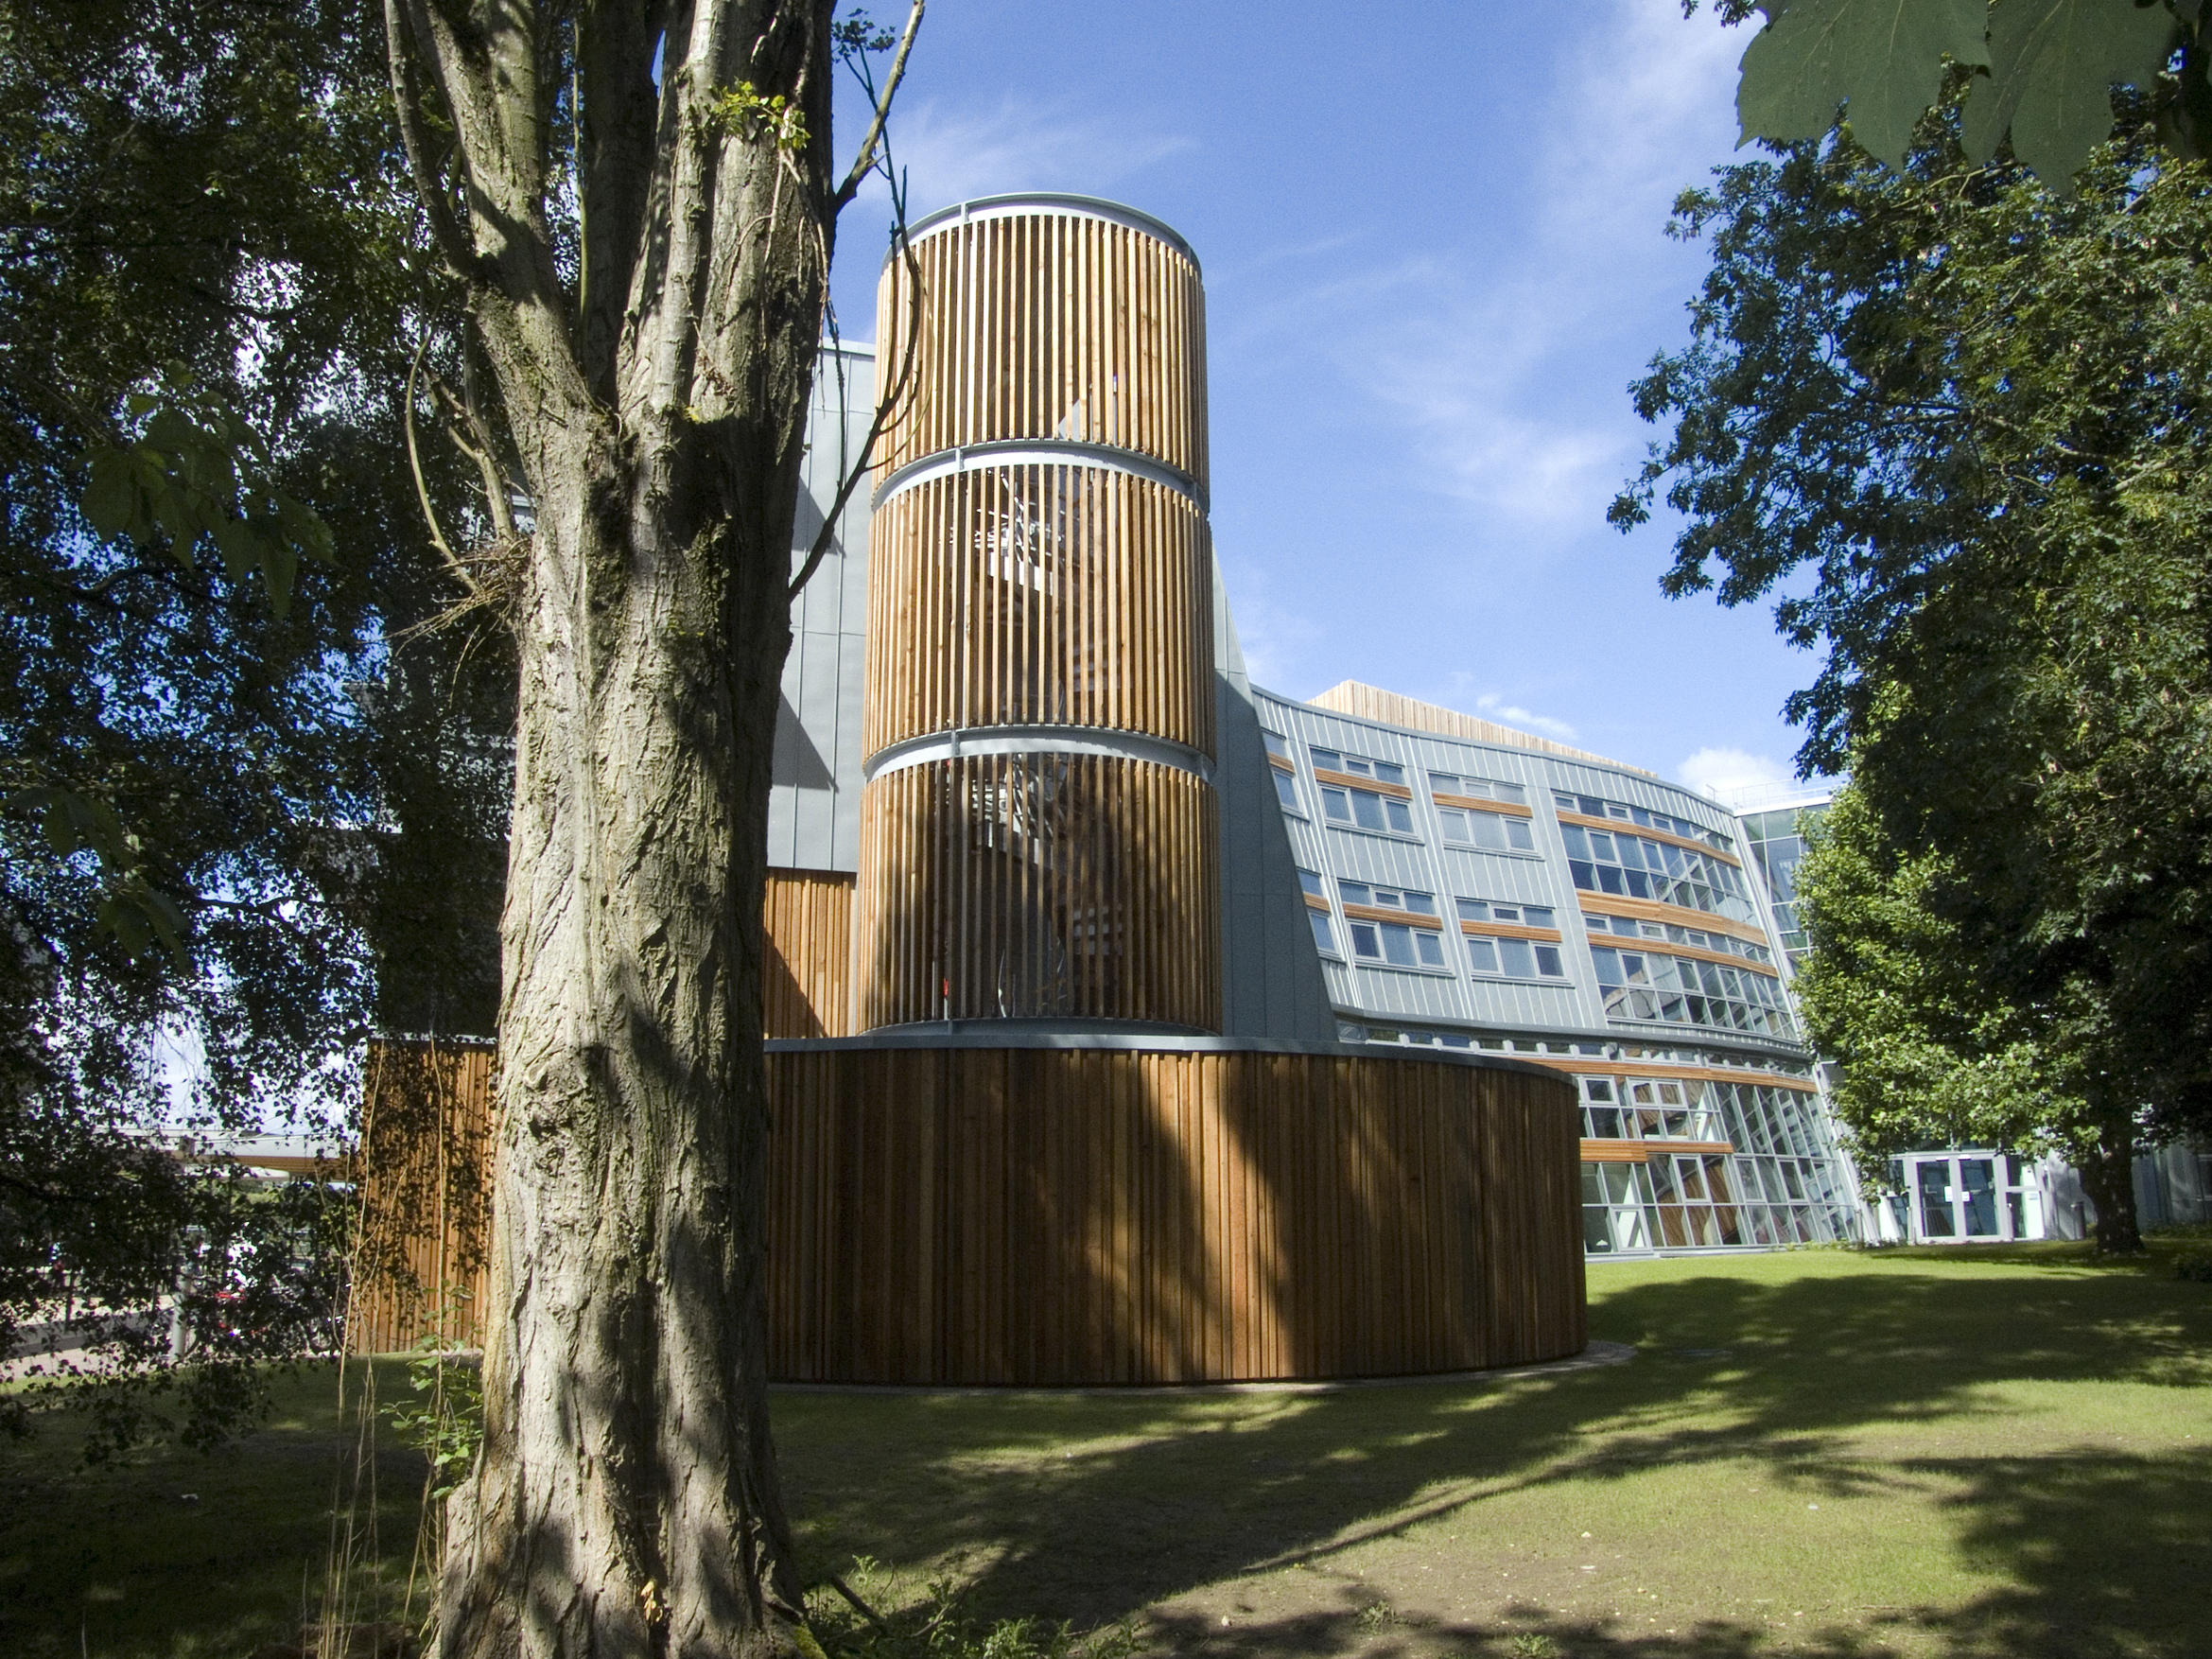 Stephen-Hill-Architects-Berrick-Saul-Building-York-04